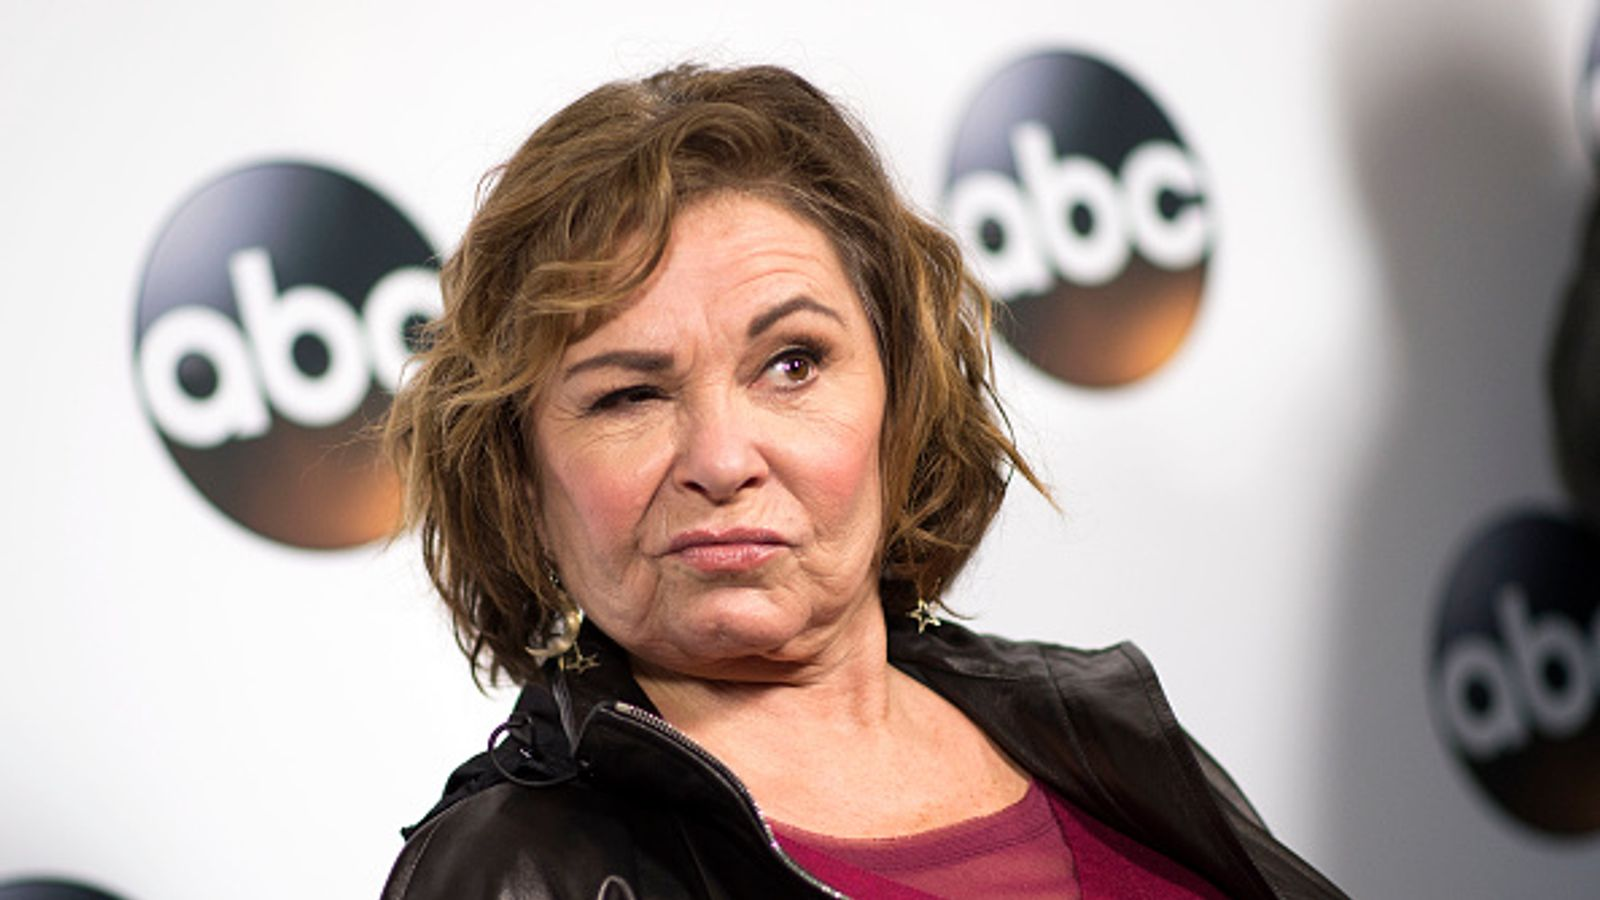 Roseanne show to return... without Roseanne